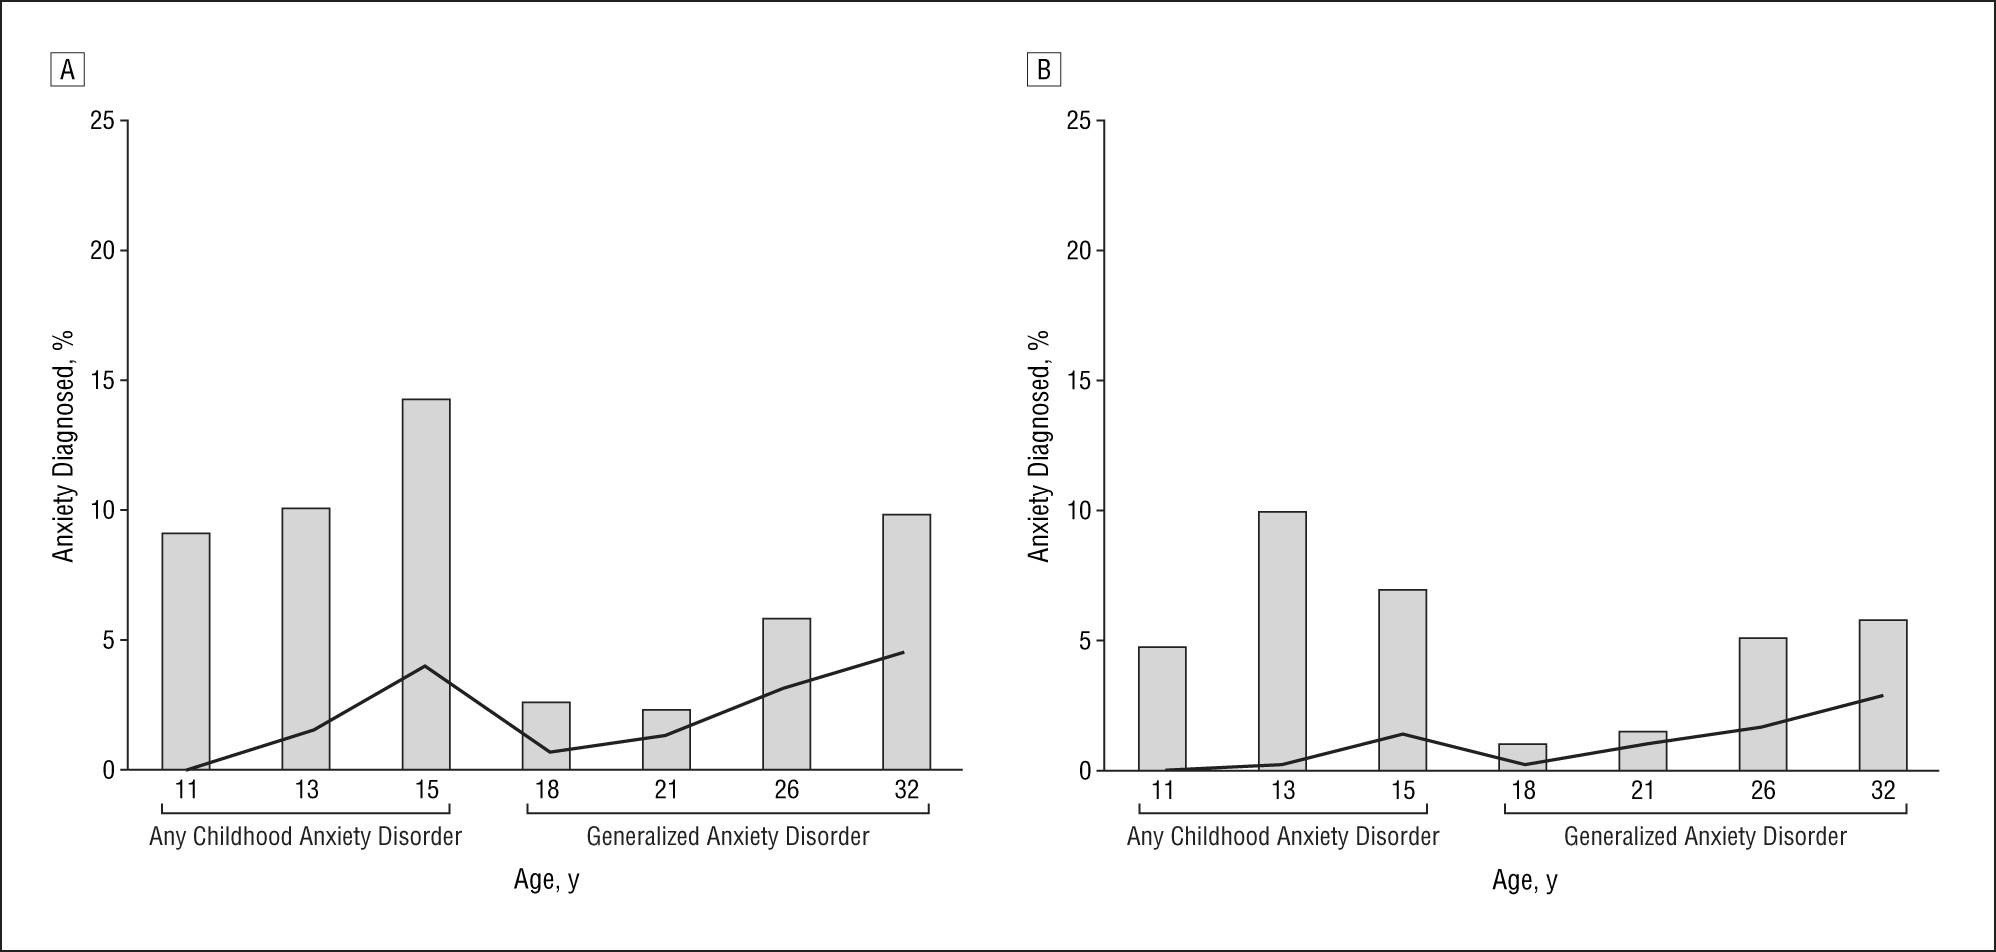 Depression and Generalized Anxiety Disorder: Cumulative